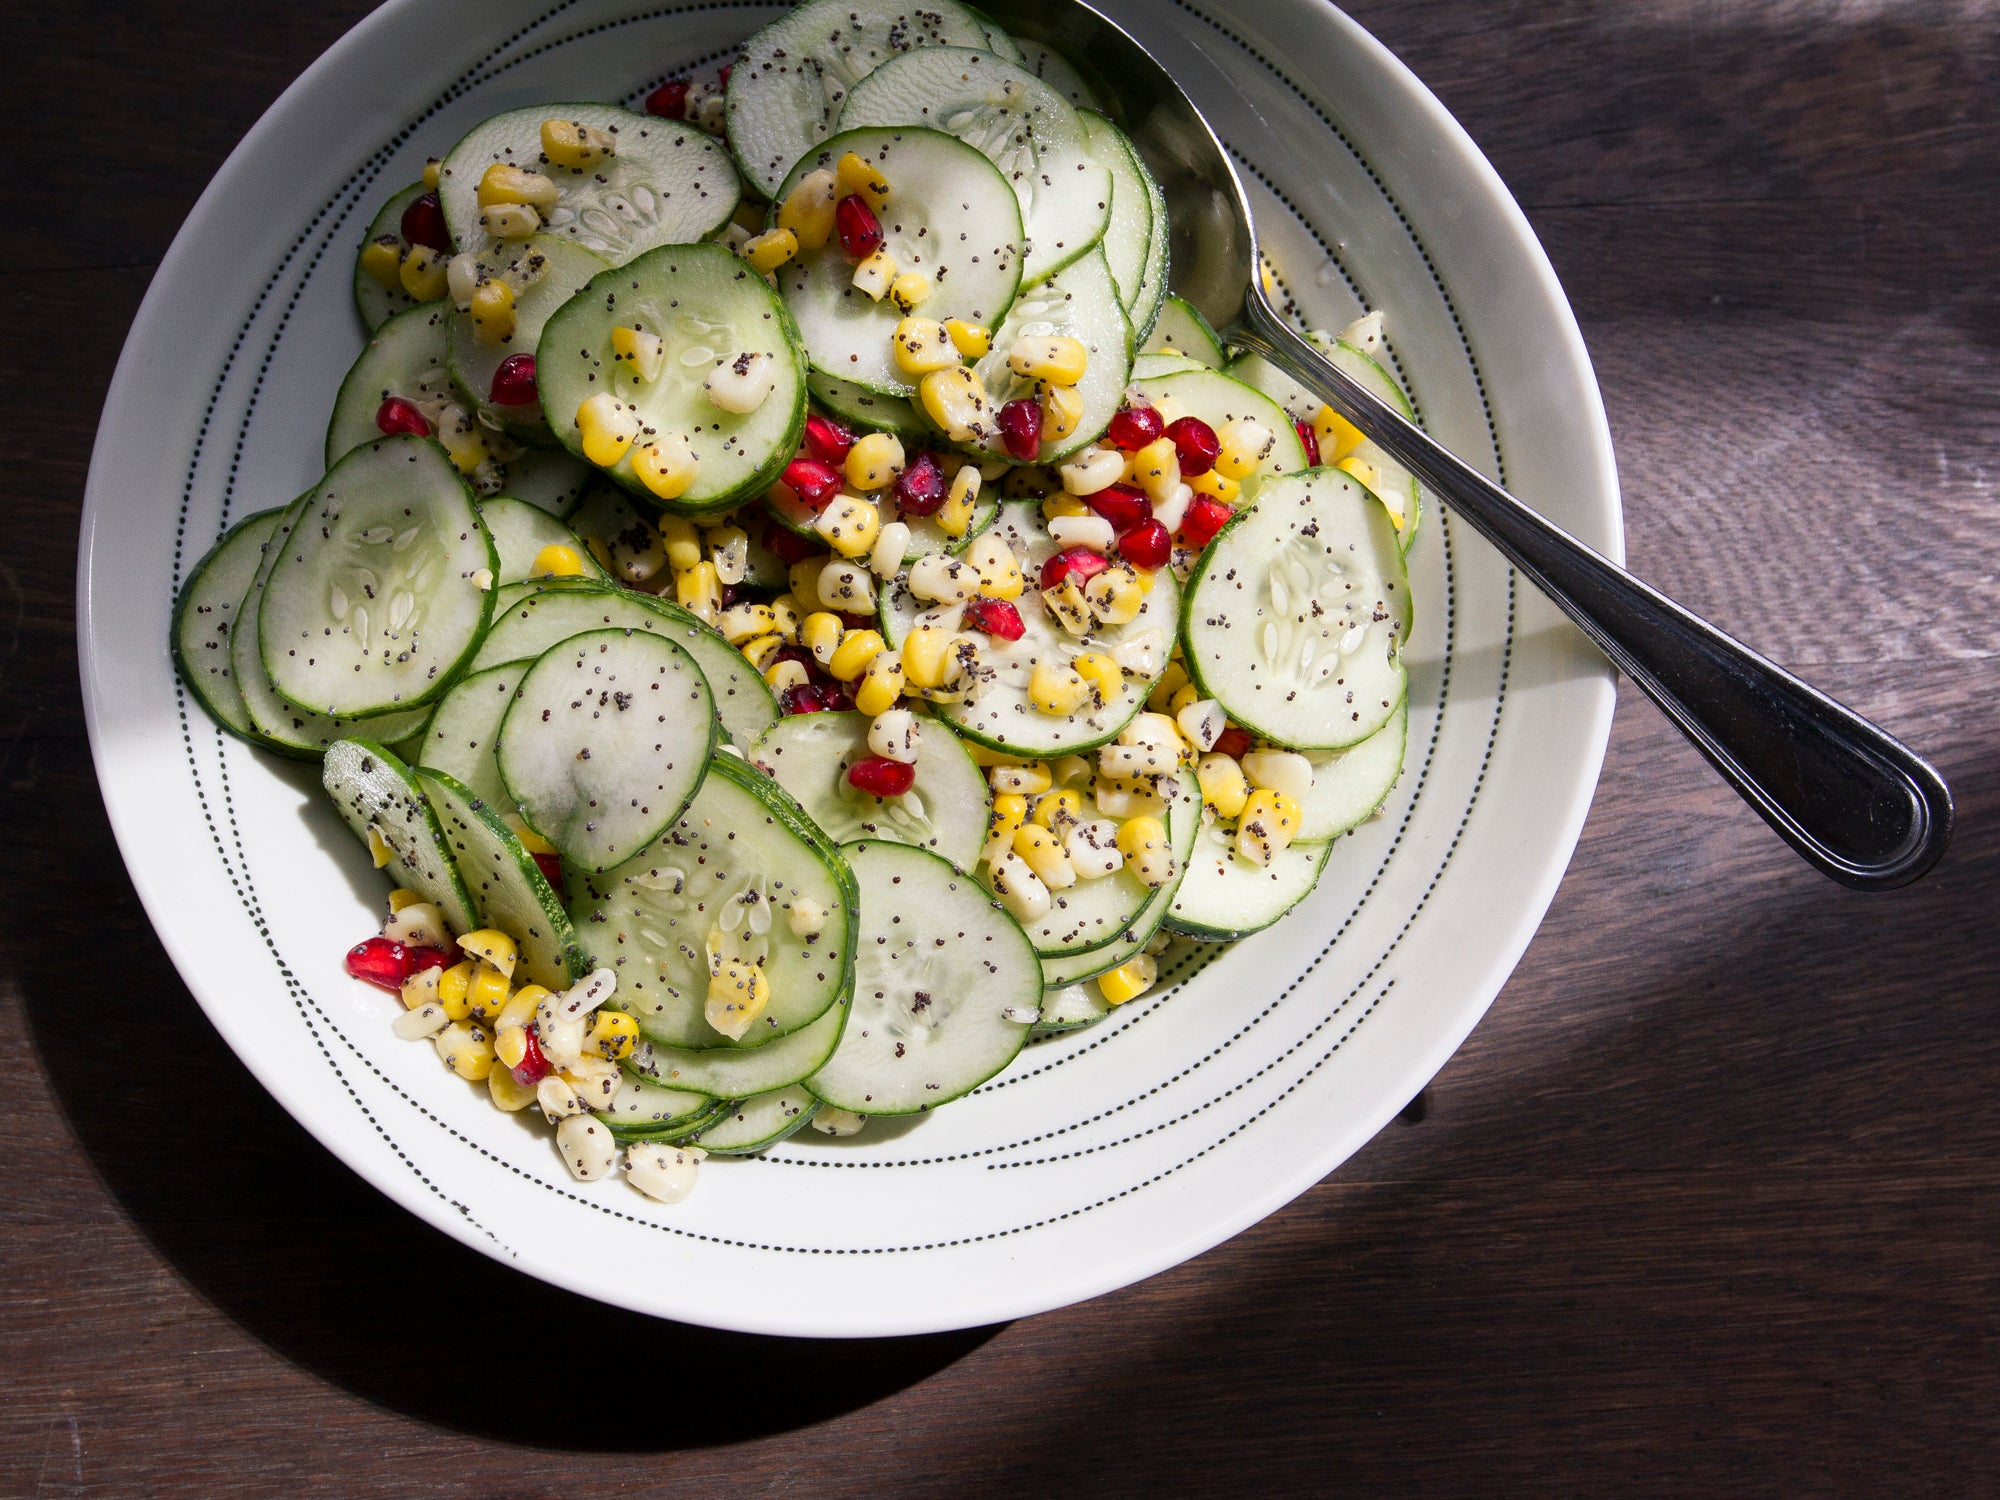 Cucumber and Corn Salad with Pomegranate and Poppy Seeds